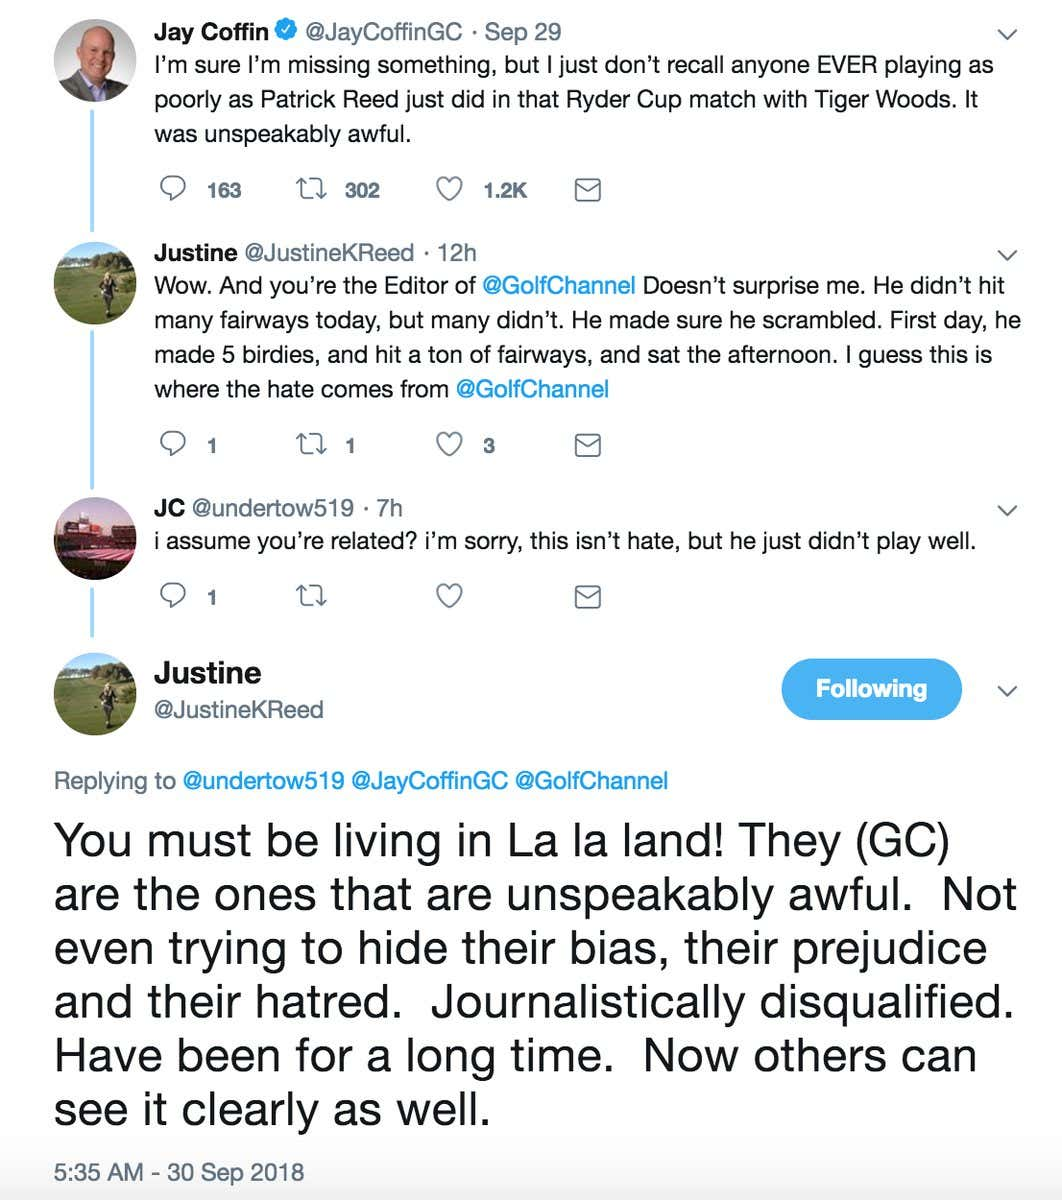 300d3f5ad55 Ryder Cup media center is BUZZING about Patrick Reed s wife calling Golf  Channel fake news on twitter. Journalistically disqualified! Is that really  her